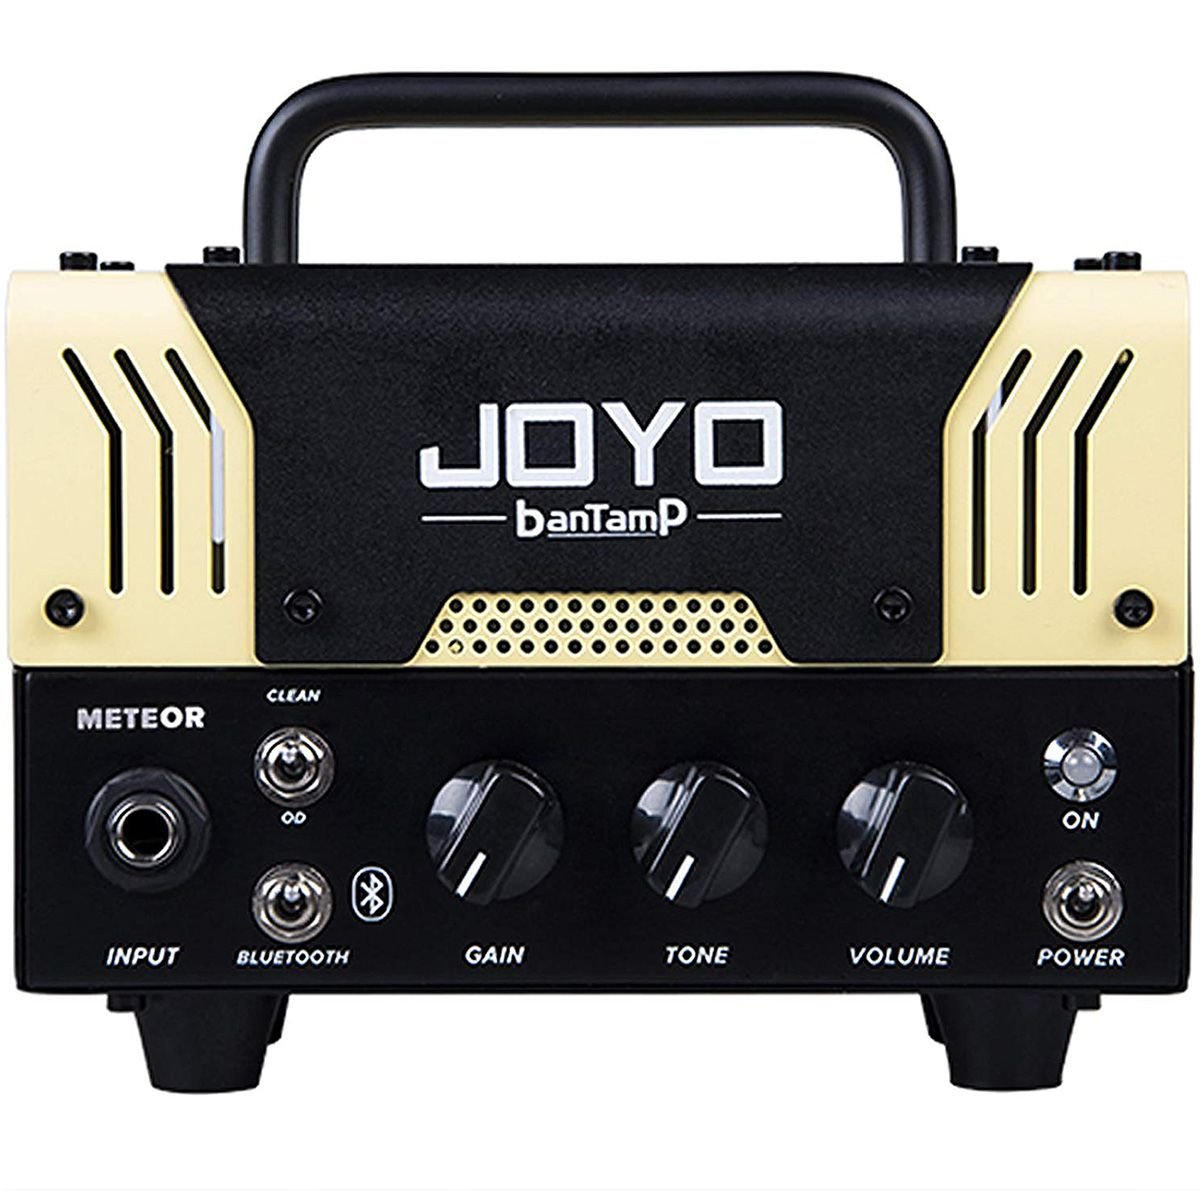 Mini Amplificador Joyo Meteor Bantamp 20w Para Guitarra